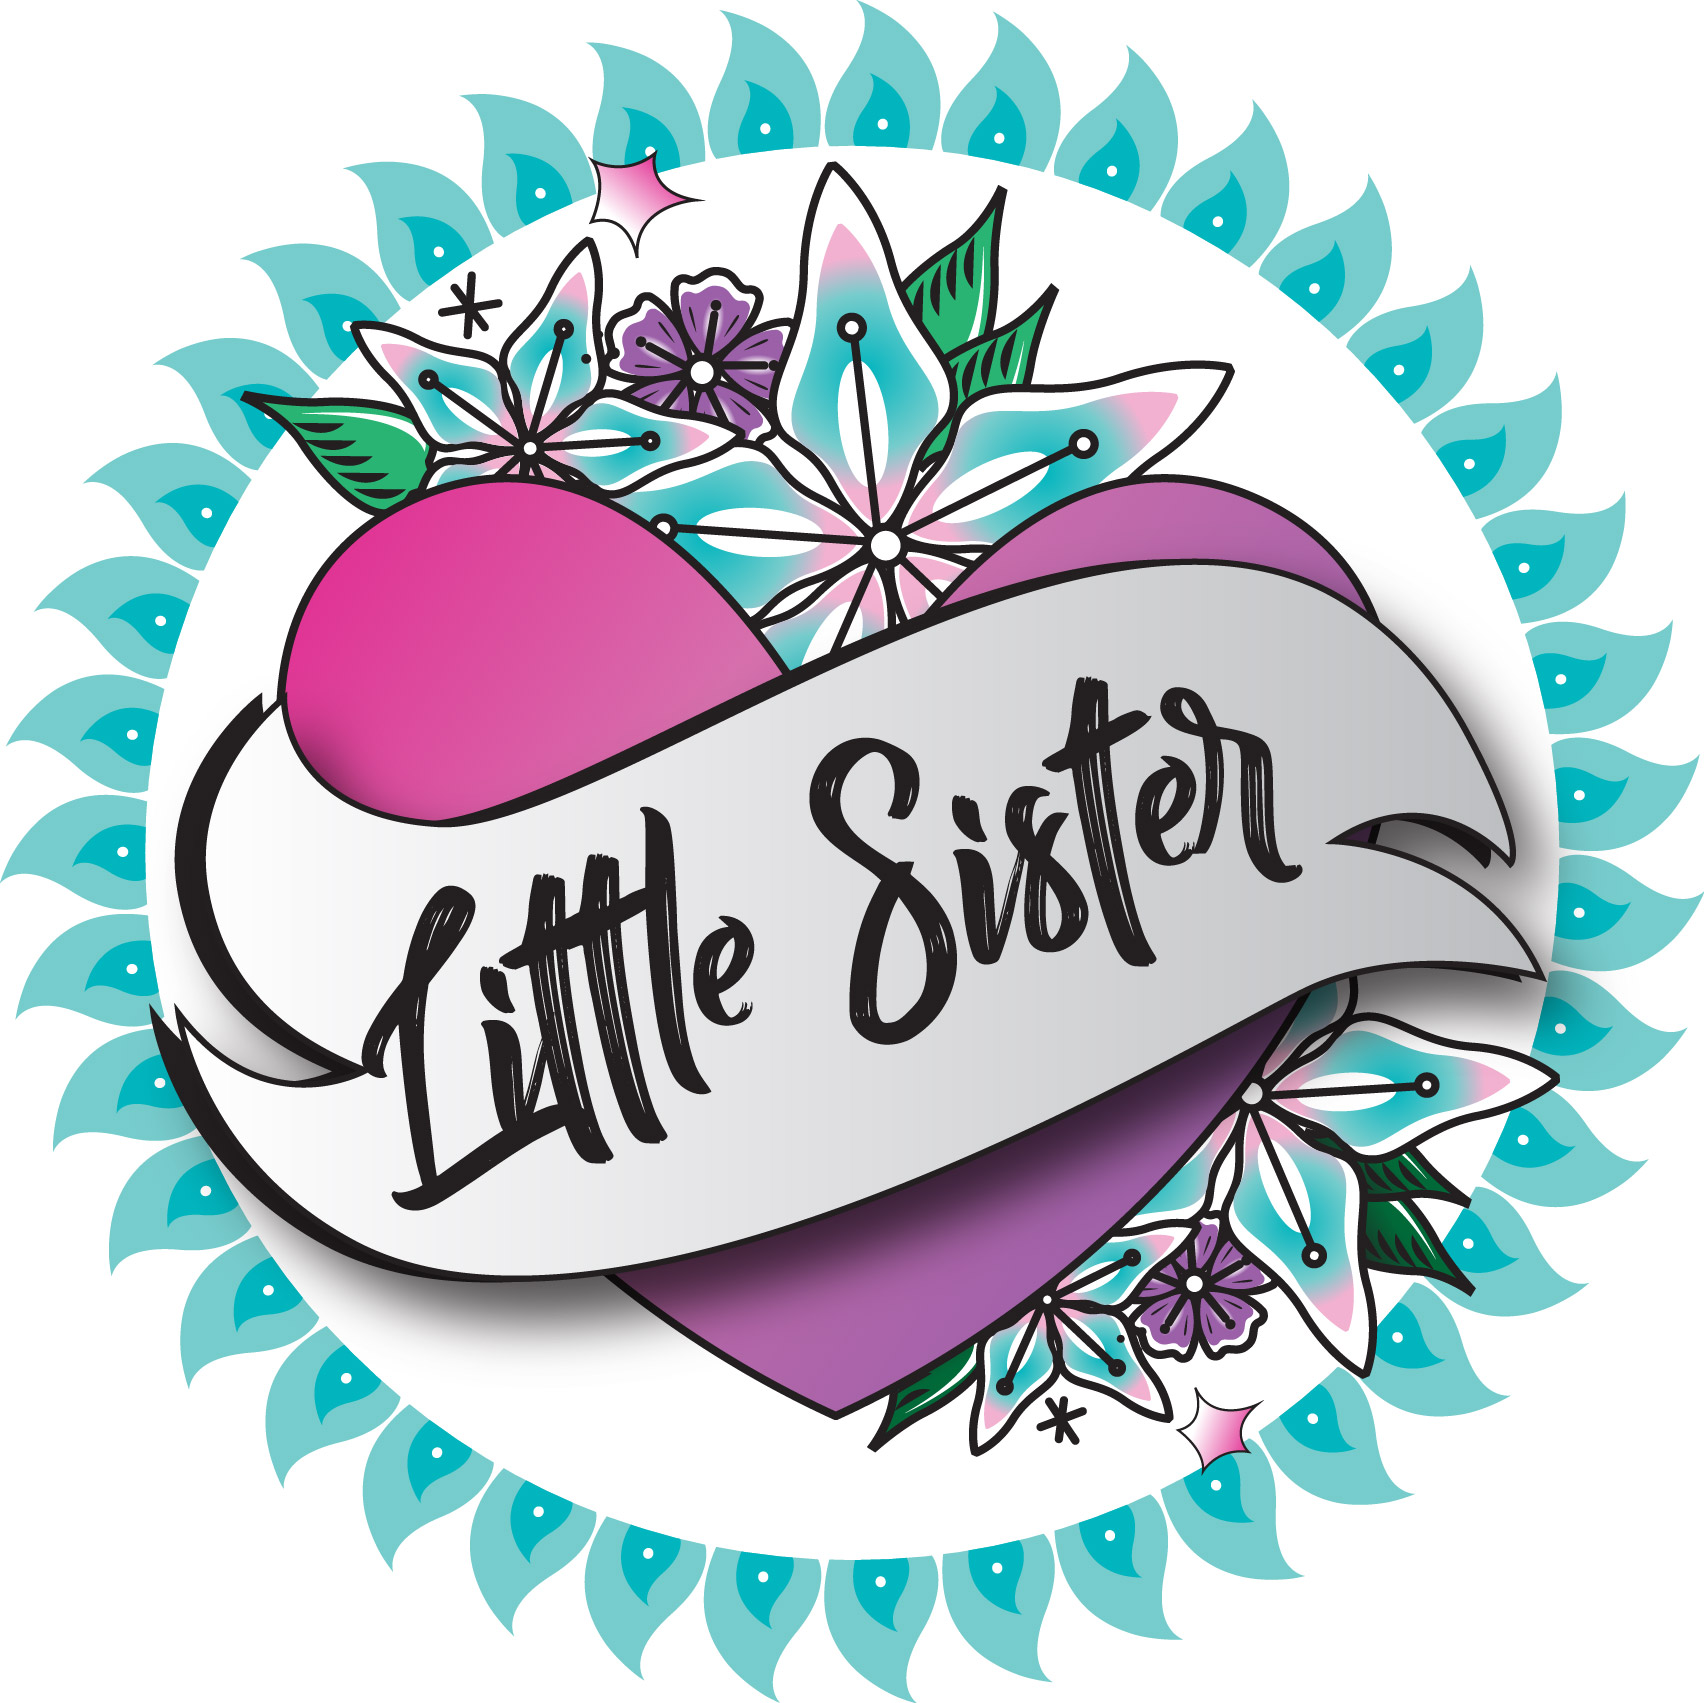 little sister mug sister gift ideas birthday present gift from